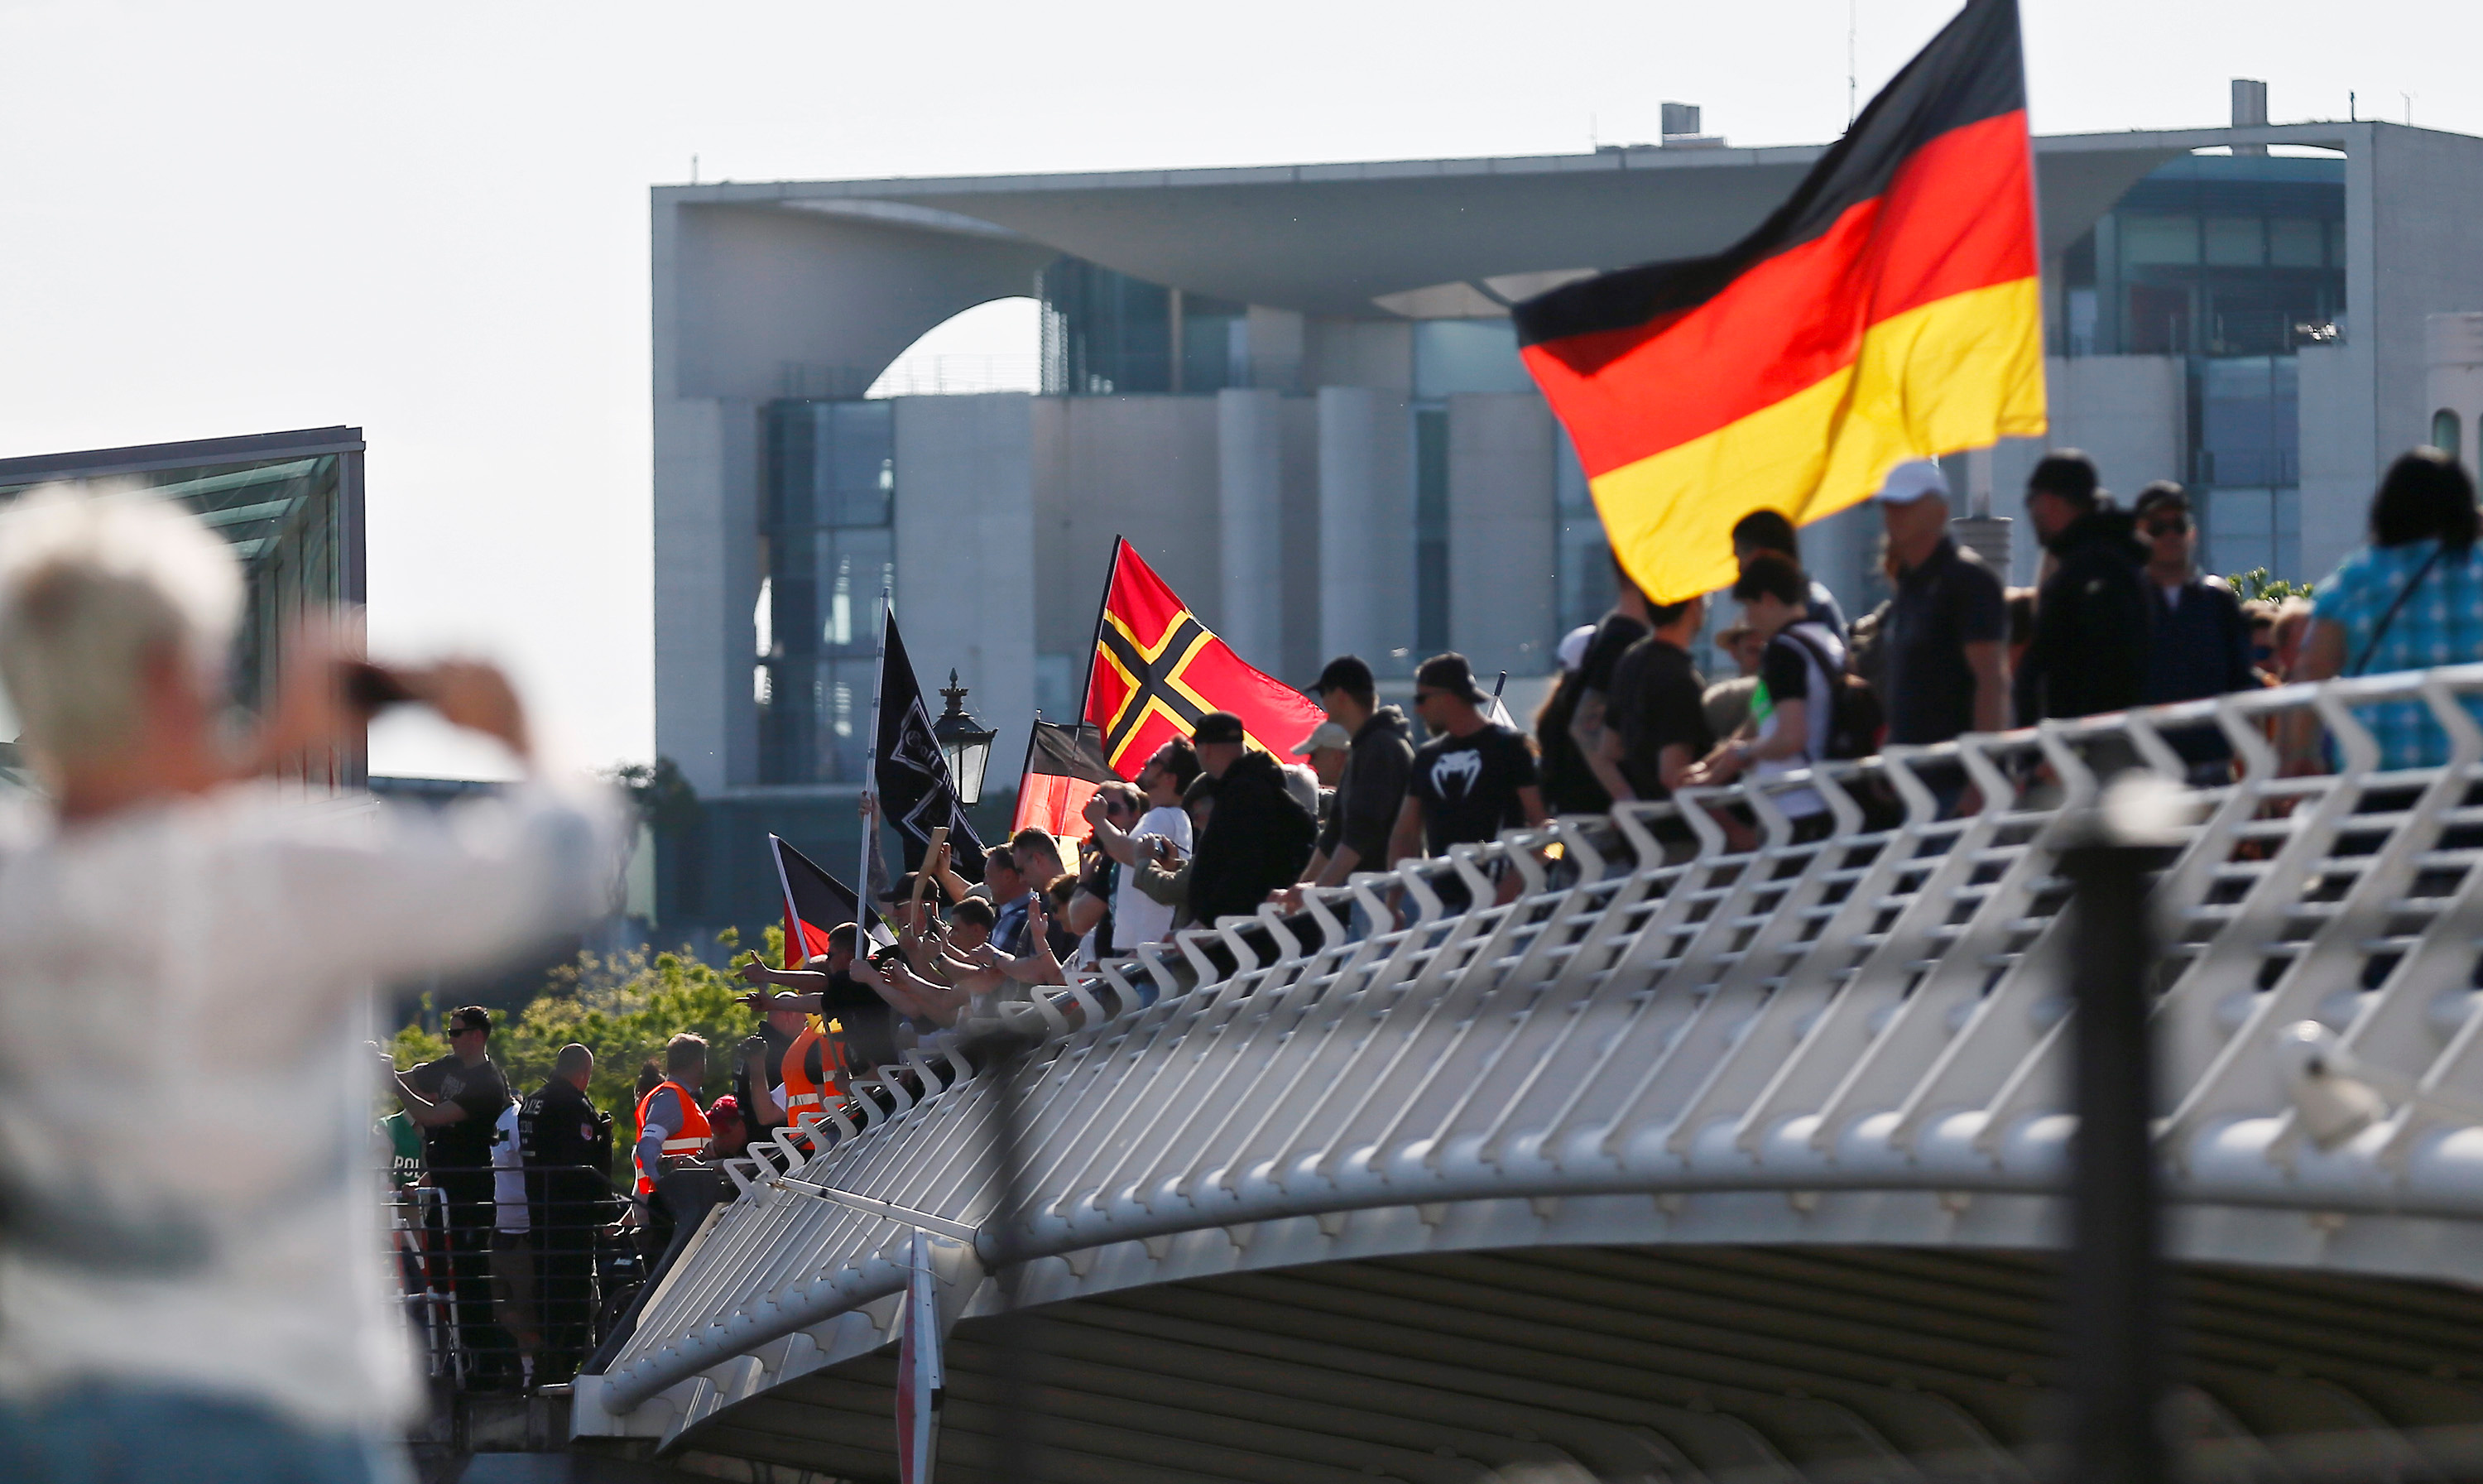 Right-wing protestors demonstrate against refugees, Islam and German Chancellor Angela Merkel in front of the chancellery in Berlin, Germany, May 7, 2016.